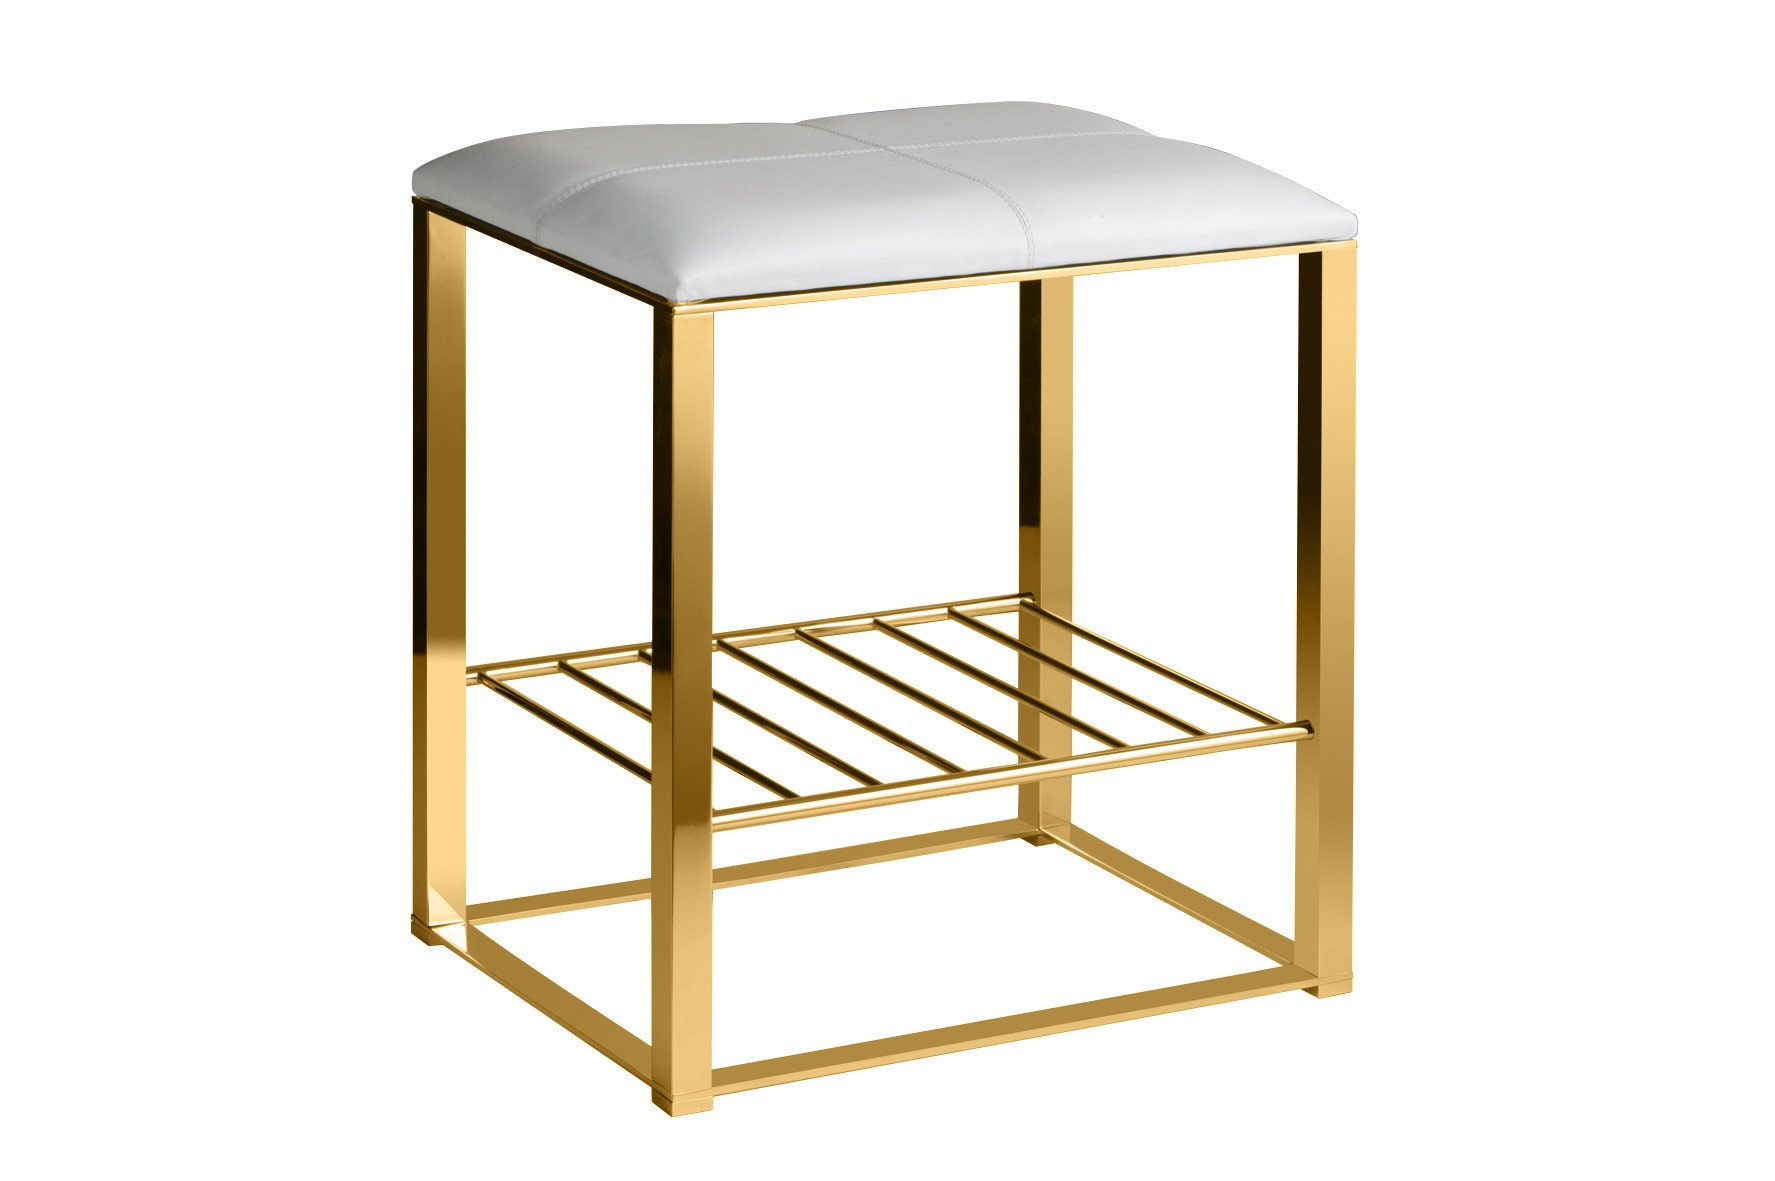 Backless Vanity Stool Bench, Brass Metal Legs, Leather Seat and Storage Shelf (White-Gold)